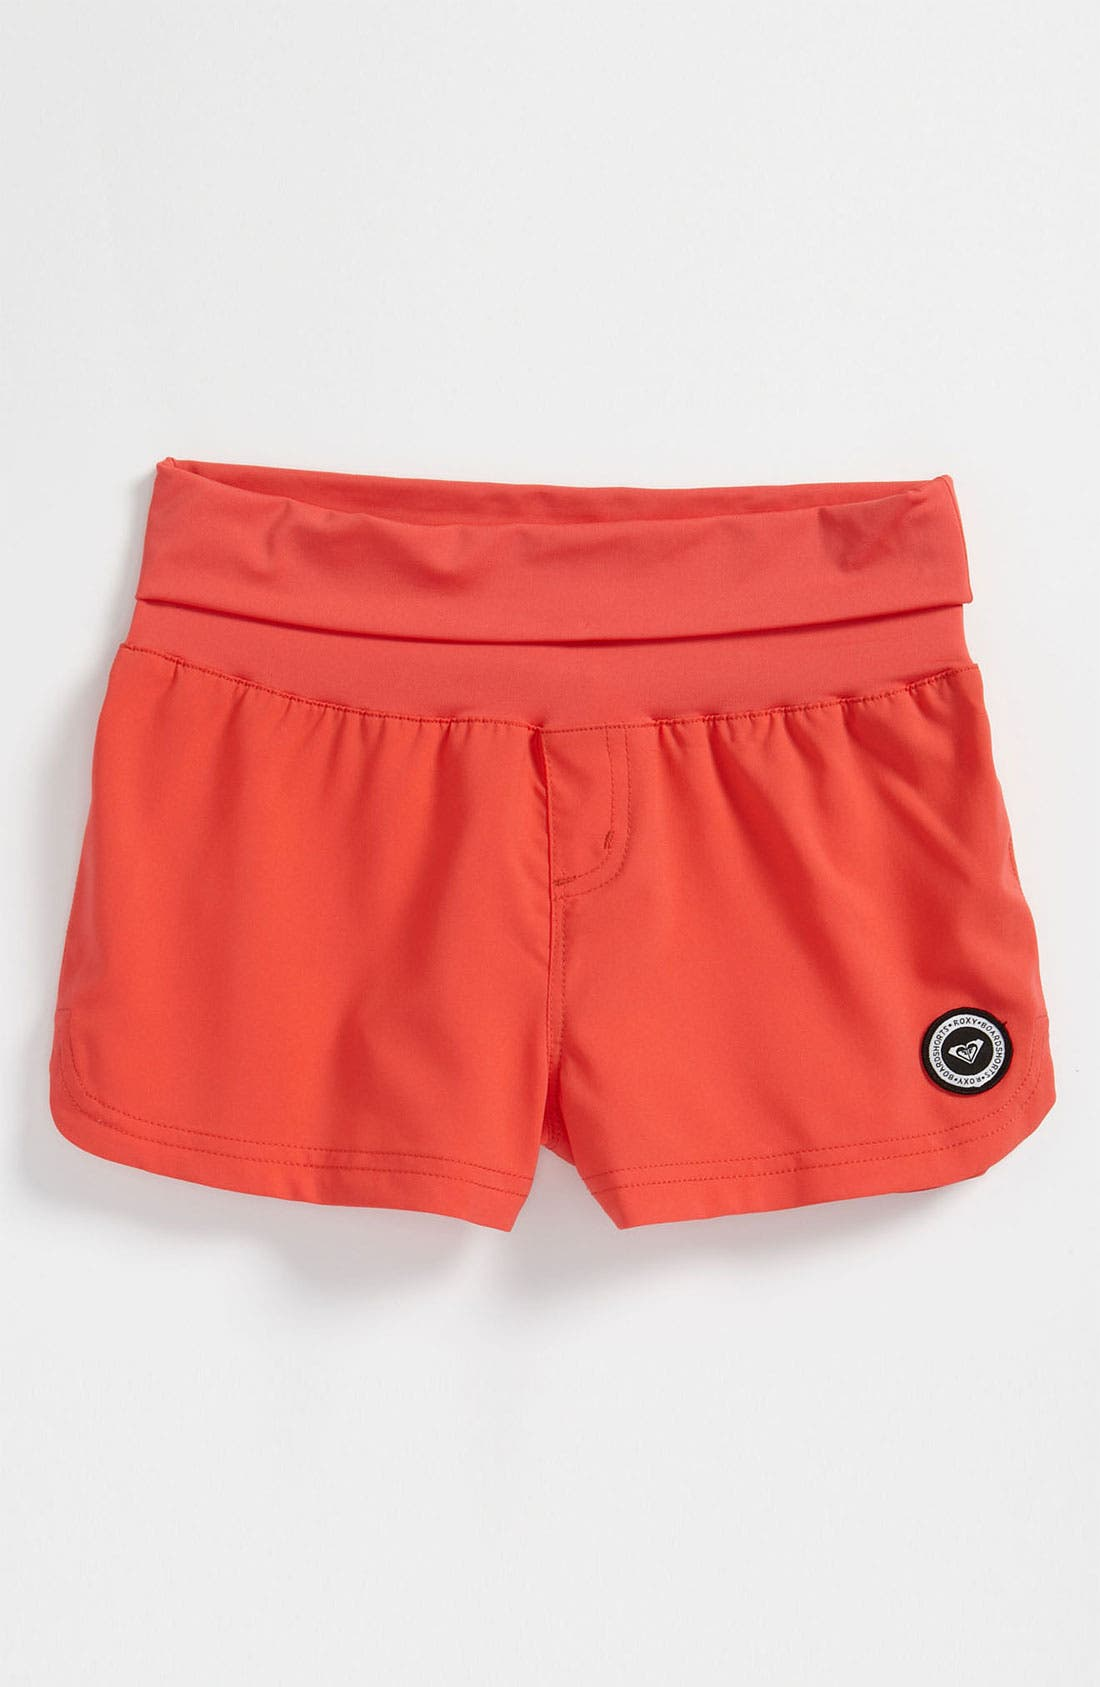 Alternate Image 1 Selected - Roxy Solid Board Shorts (Big Girls)